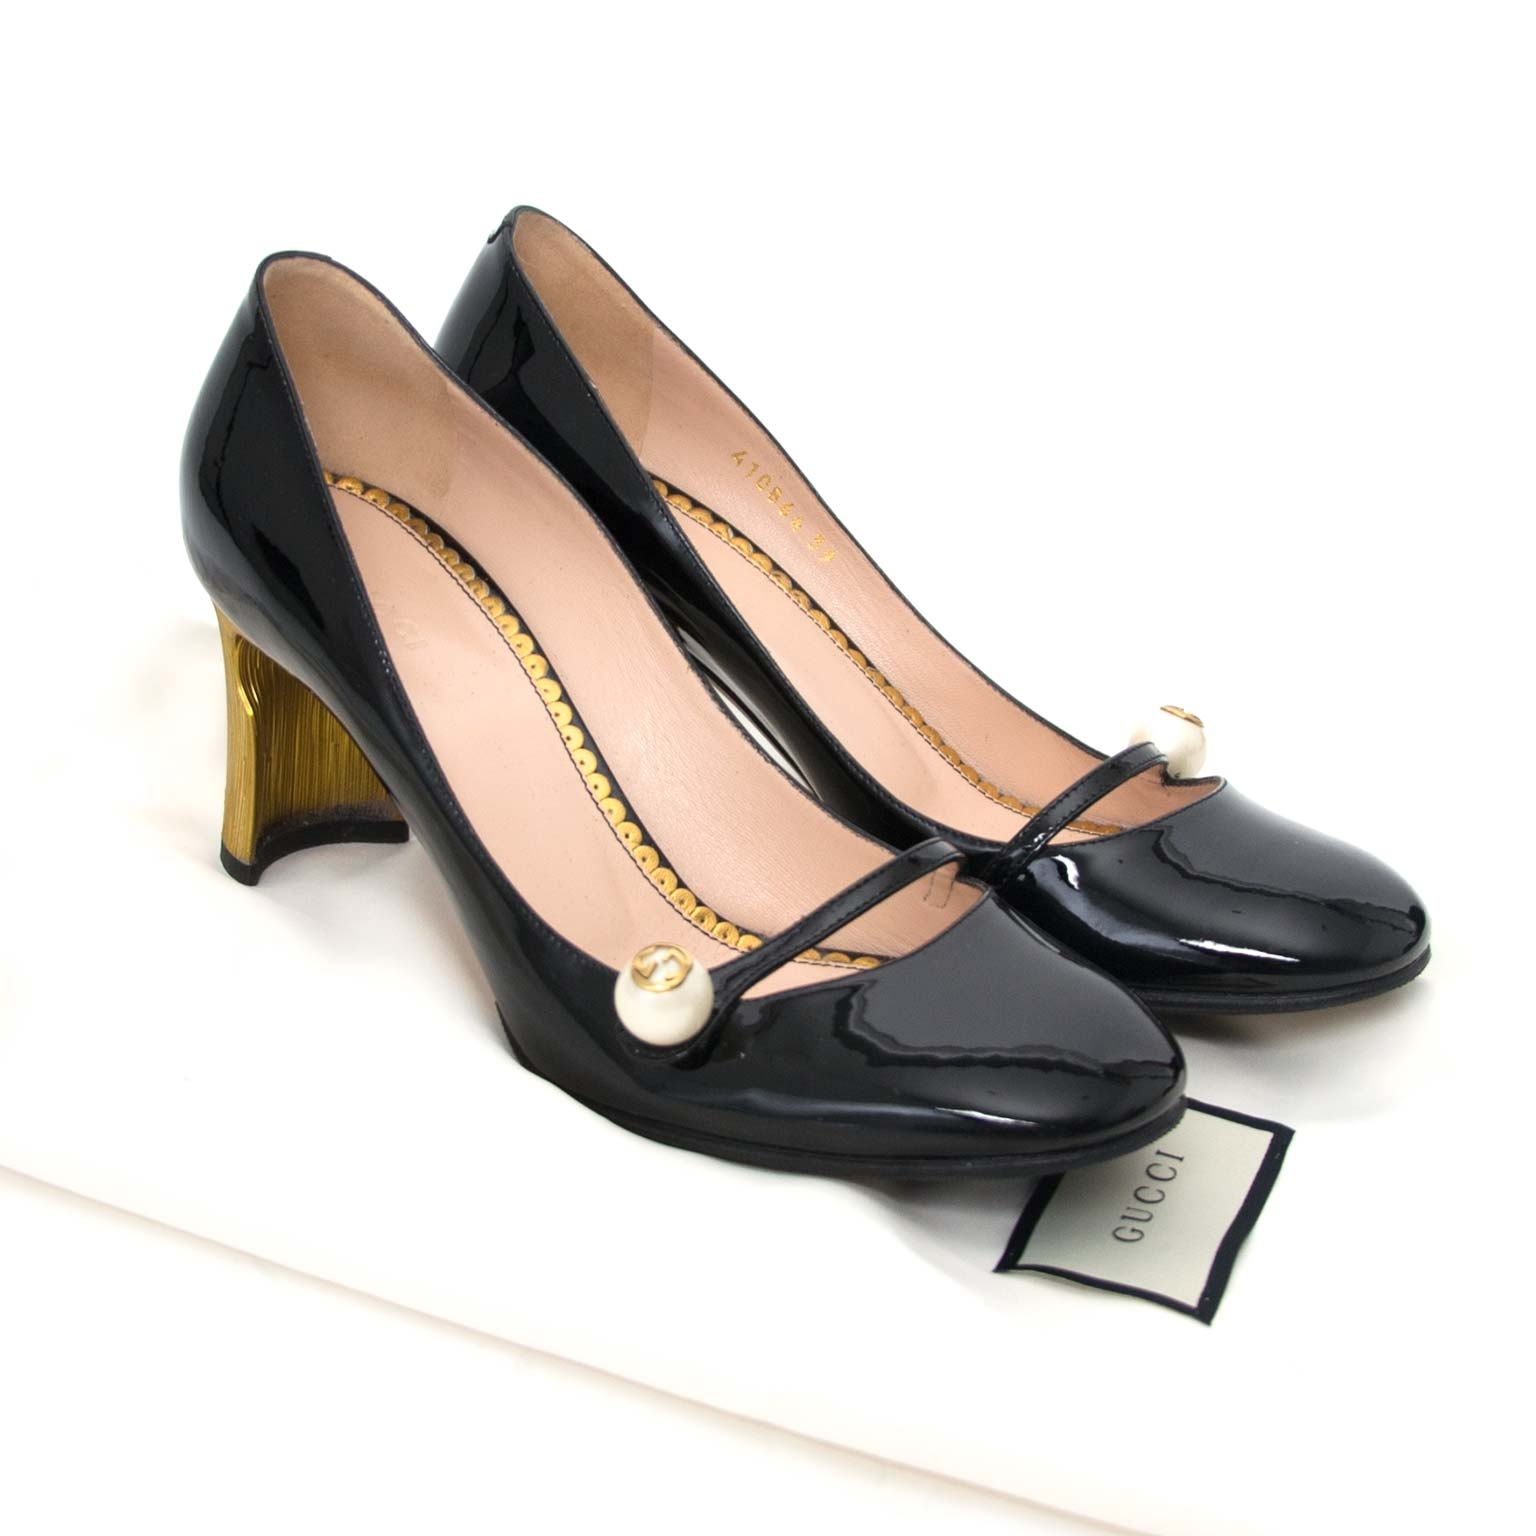 shop safe onine secondhand Gucci Black Patent Leather Gold Tone High Heel Mary Jane Pumps - Size 39